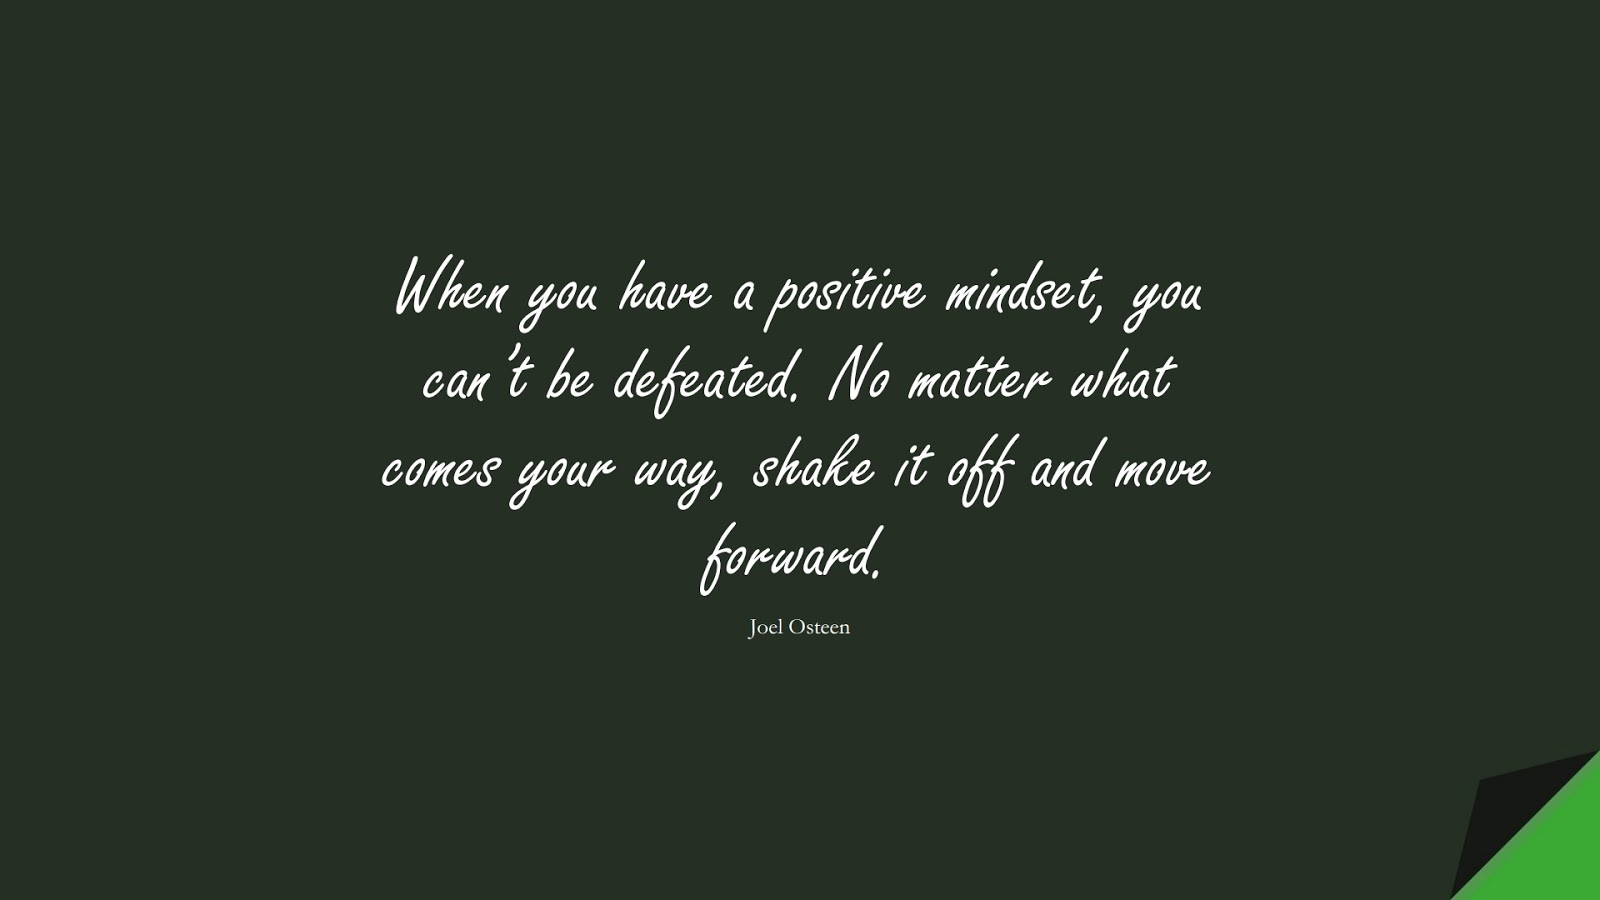 When you have a positive mindset, you can't be defeated. No matter what comes your way, shake it off and move forward. (Joel Osteen);  #PositiveQuotes